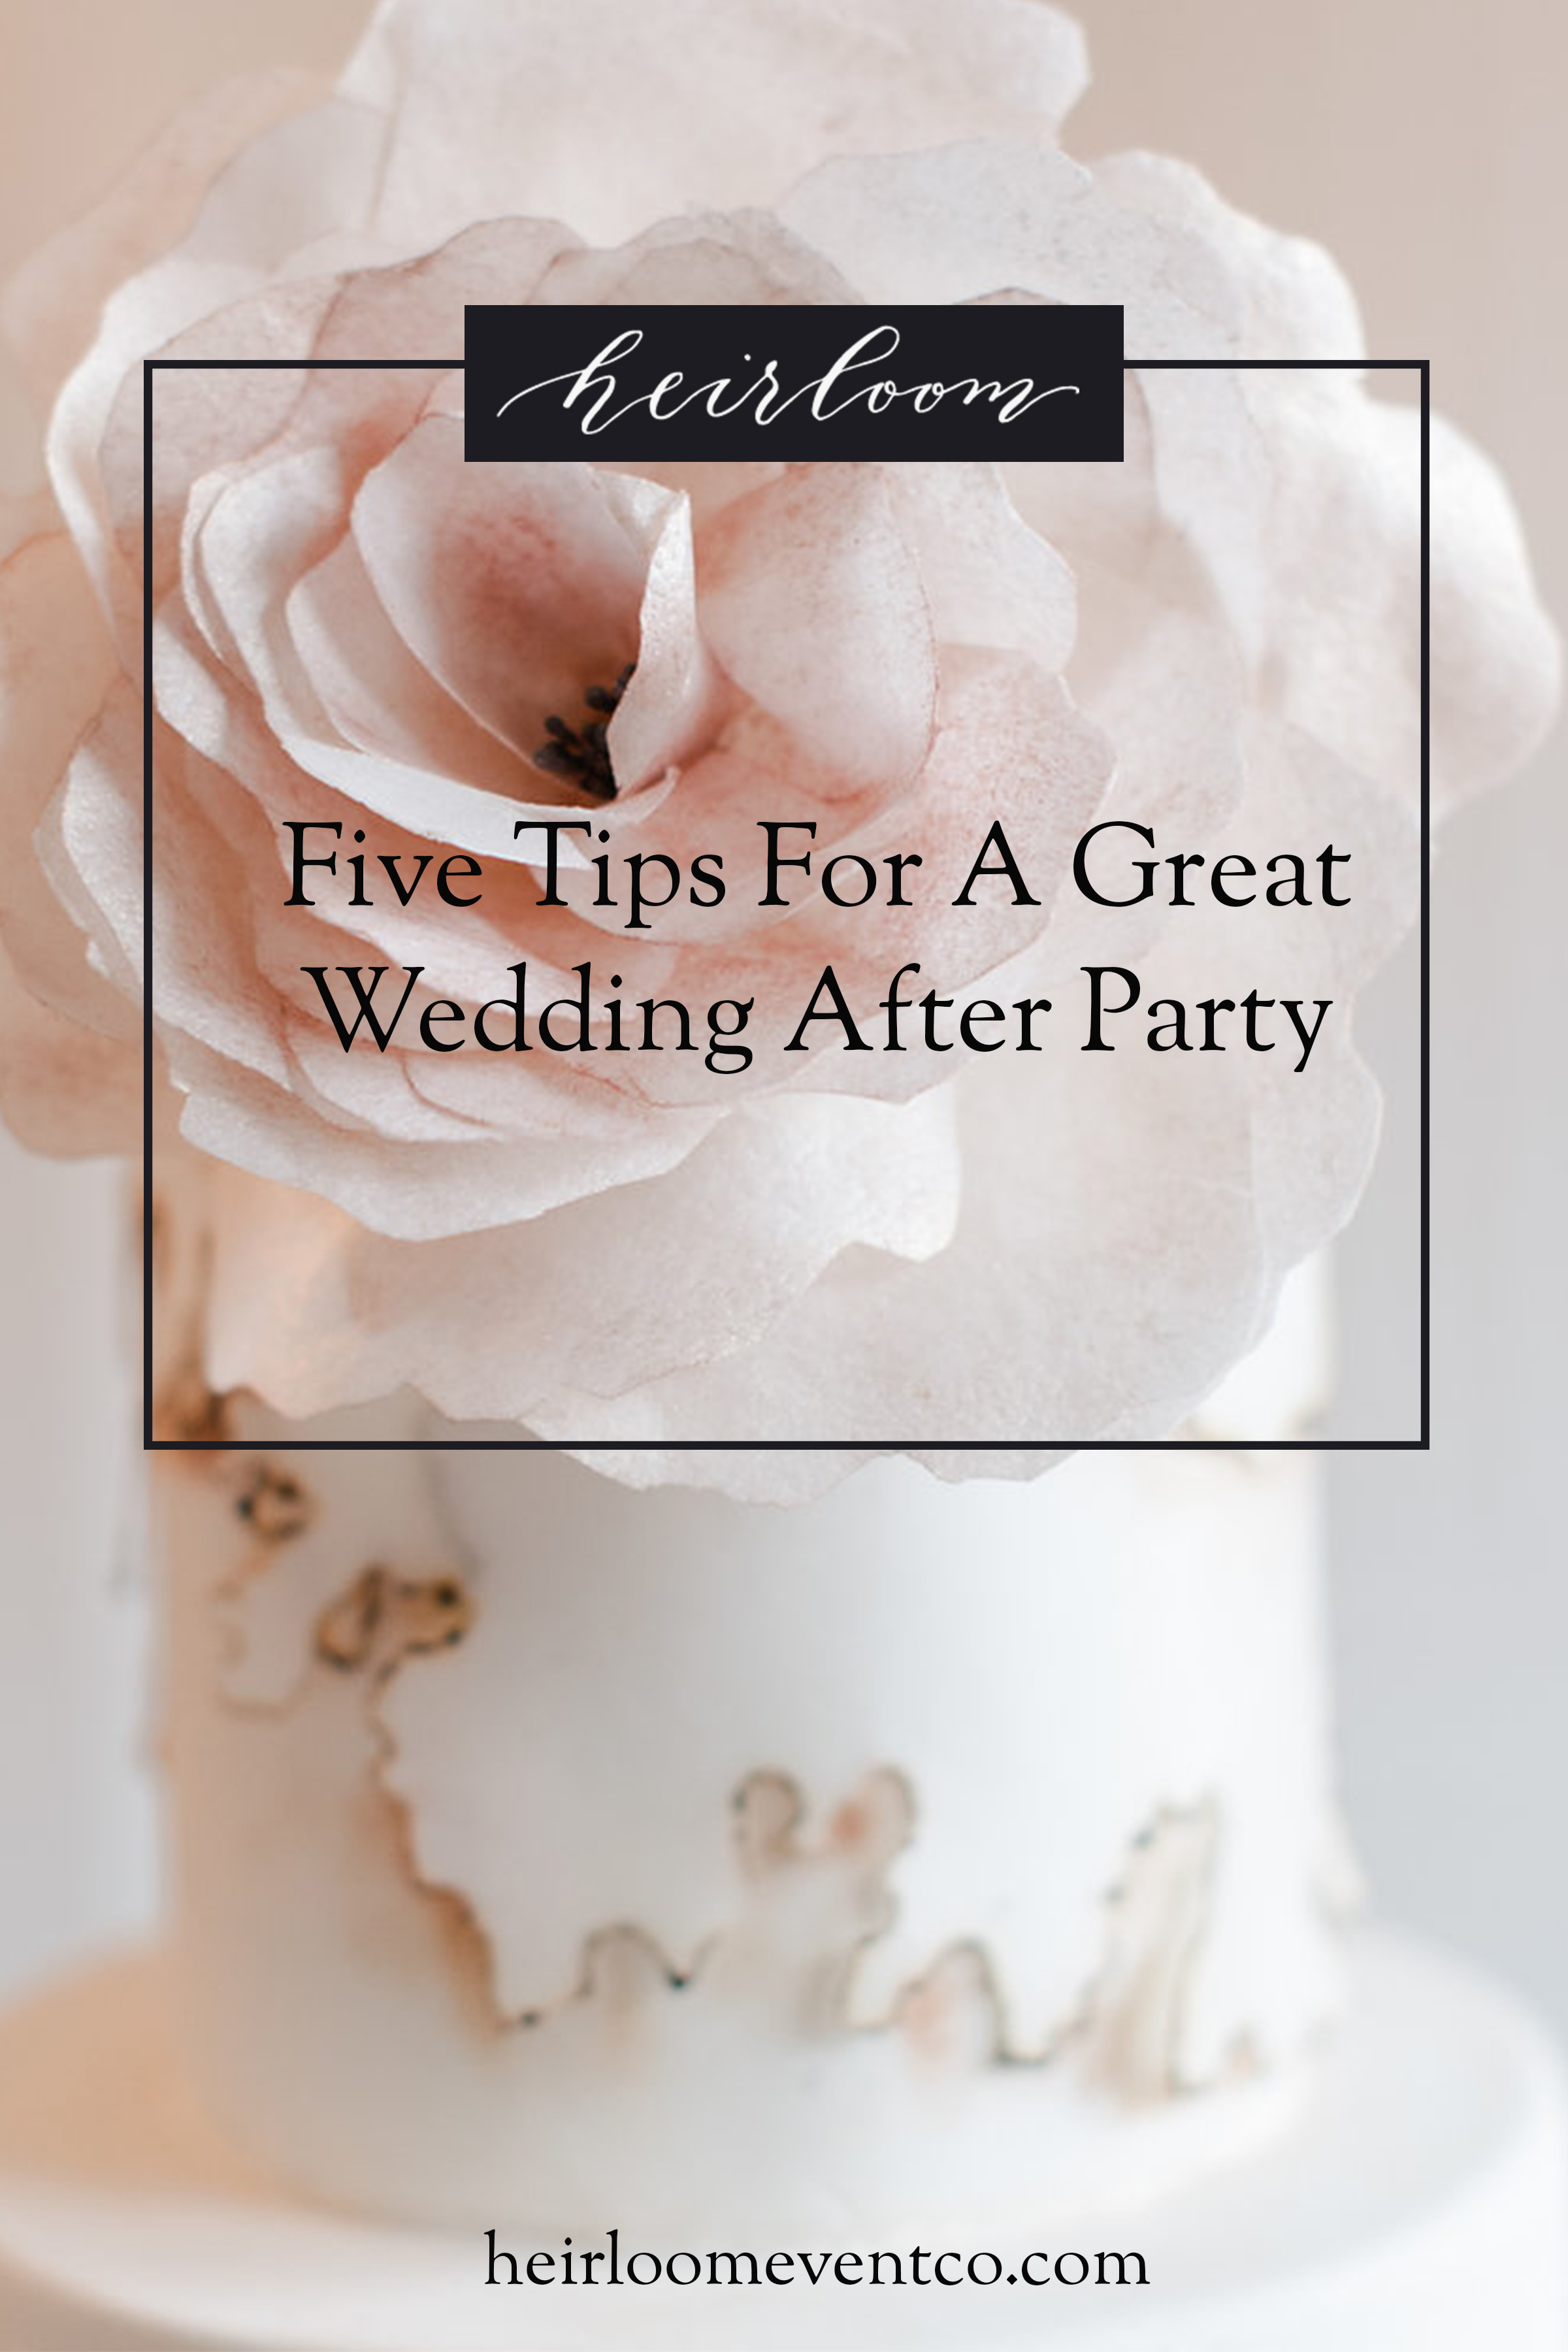 Five Tips For A Great Wedding After Party | Heirloom Event Co.